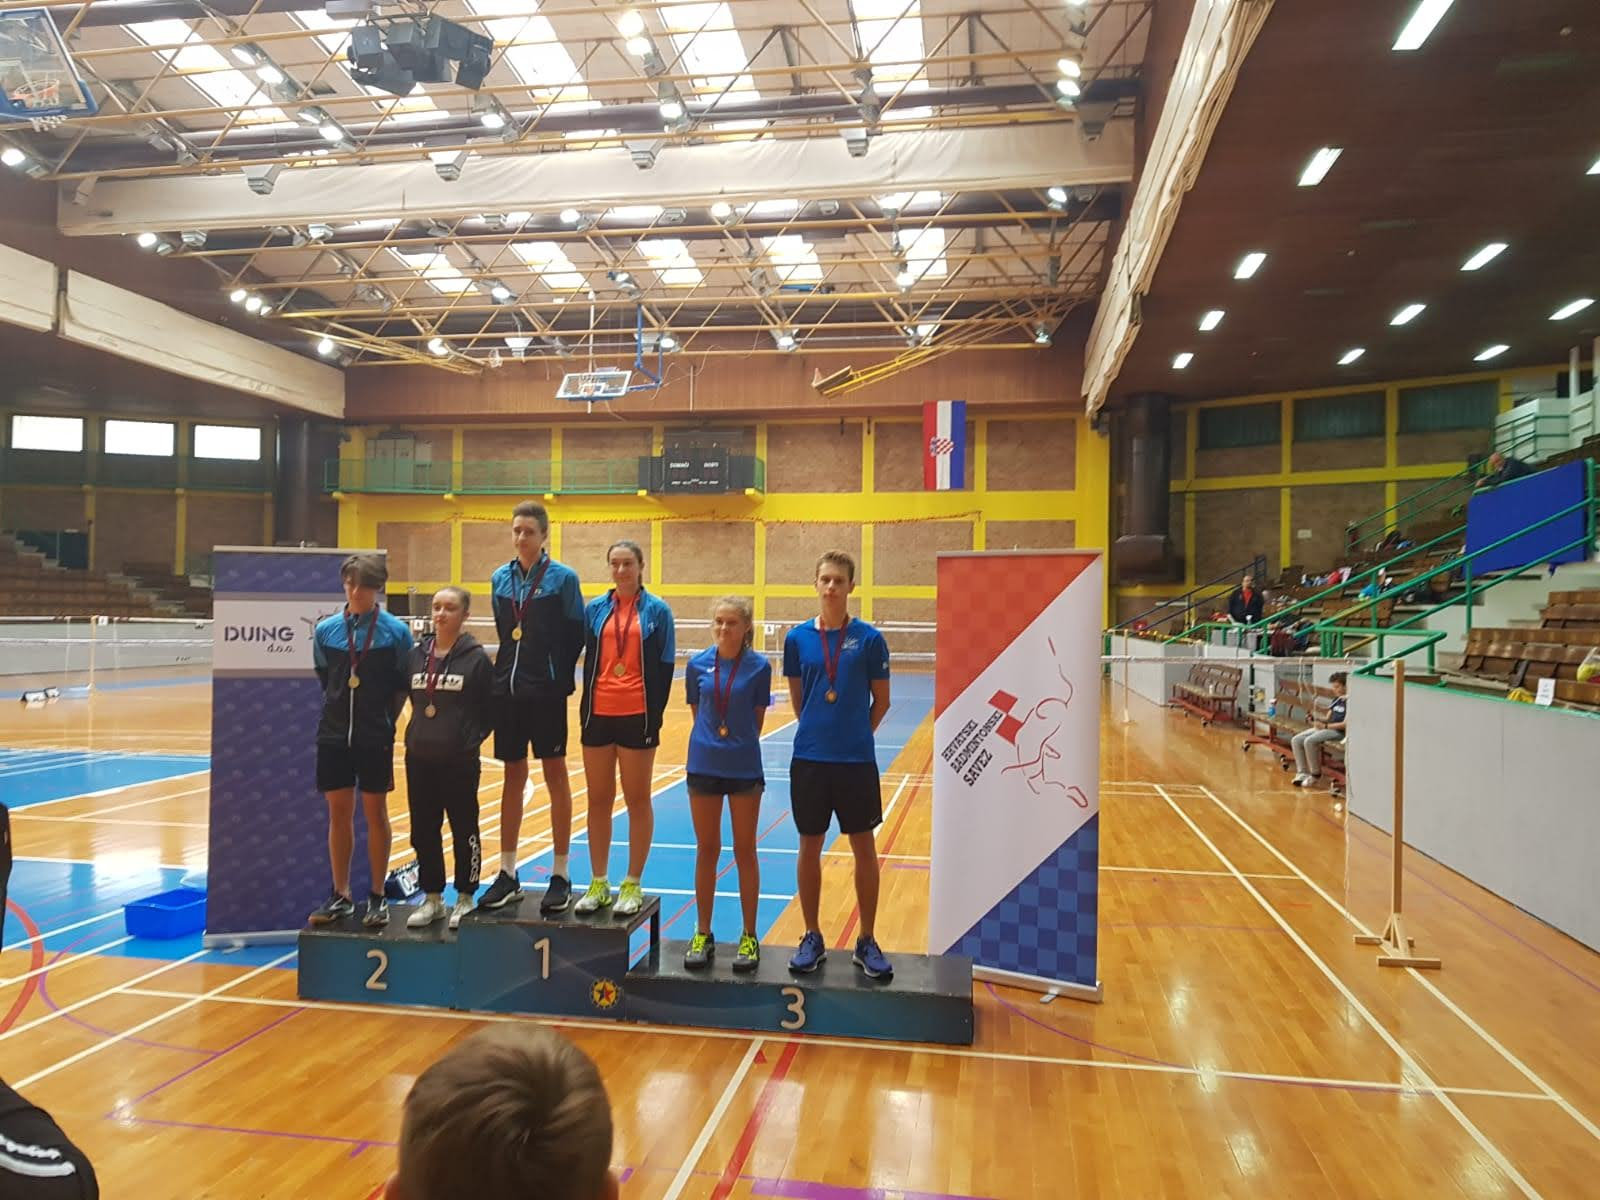 National league bronze medal XD pair badminton zadar bk koprivnica